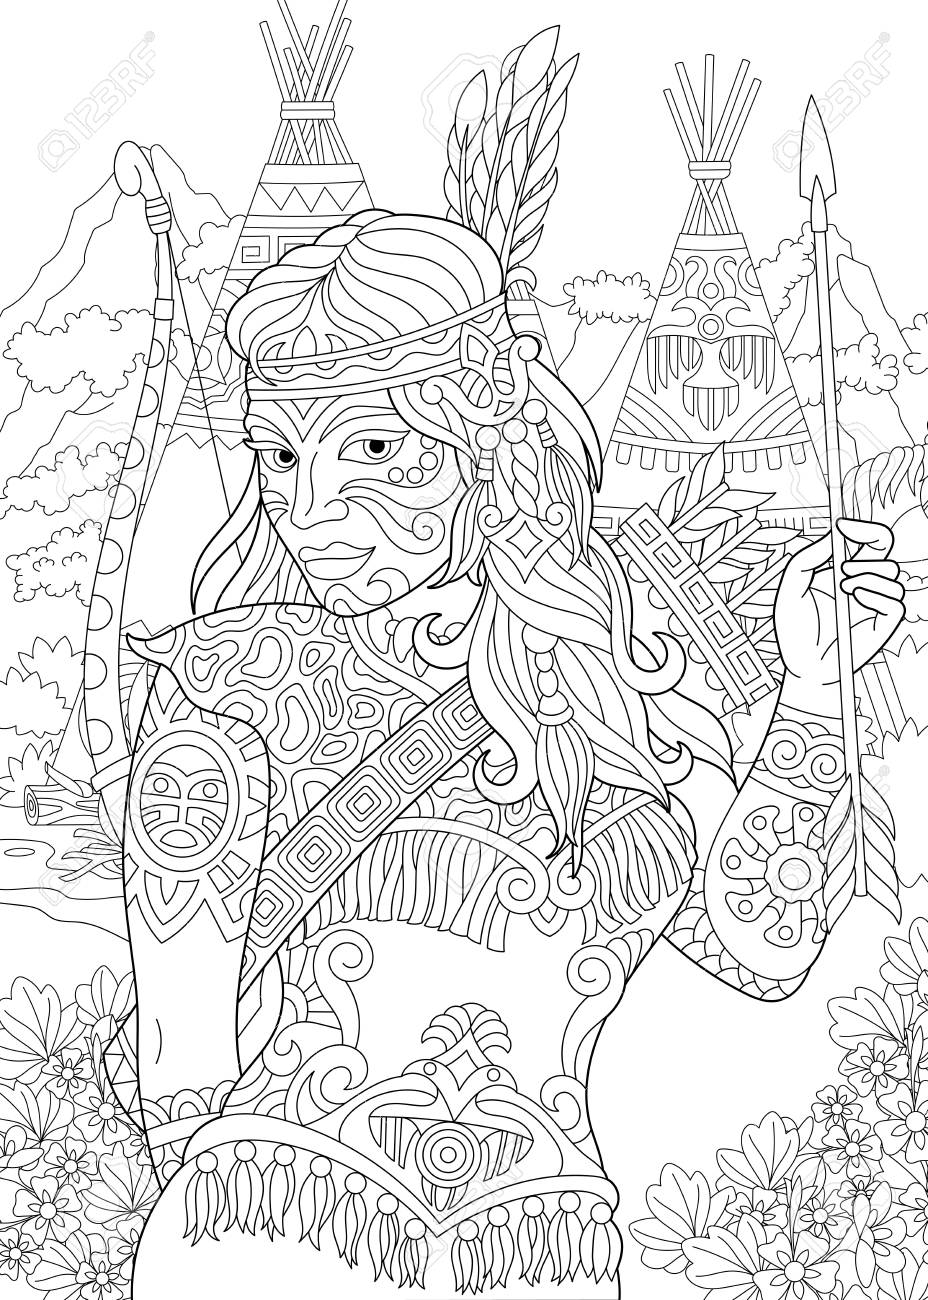 Coloring Page Adult Coloring Book Native American Indian Woman Royalty Free Cliparts Vectors And Stock Illustration Image 94391029